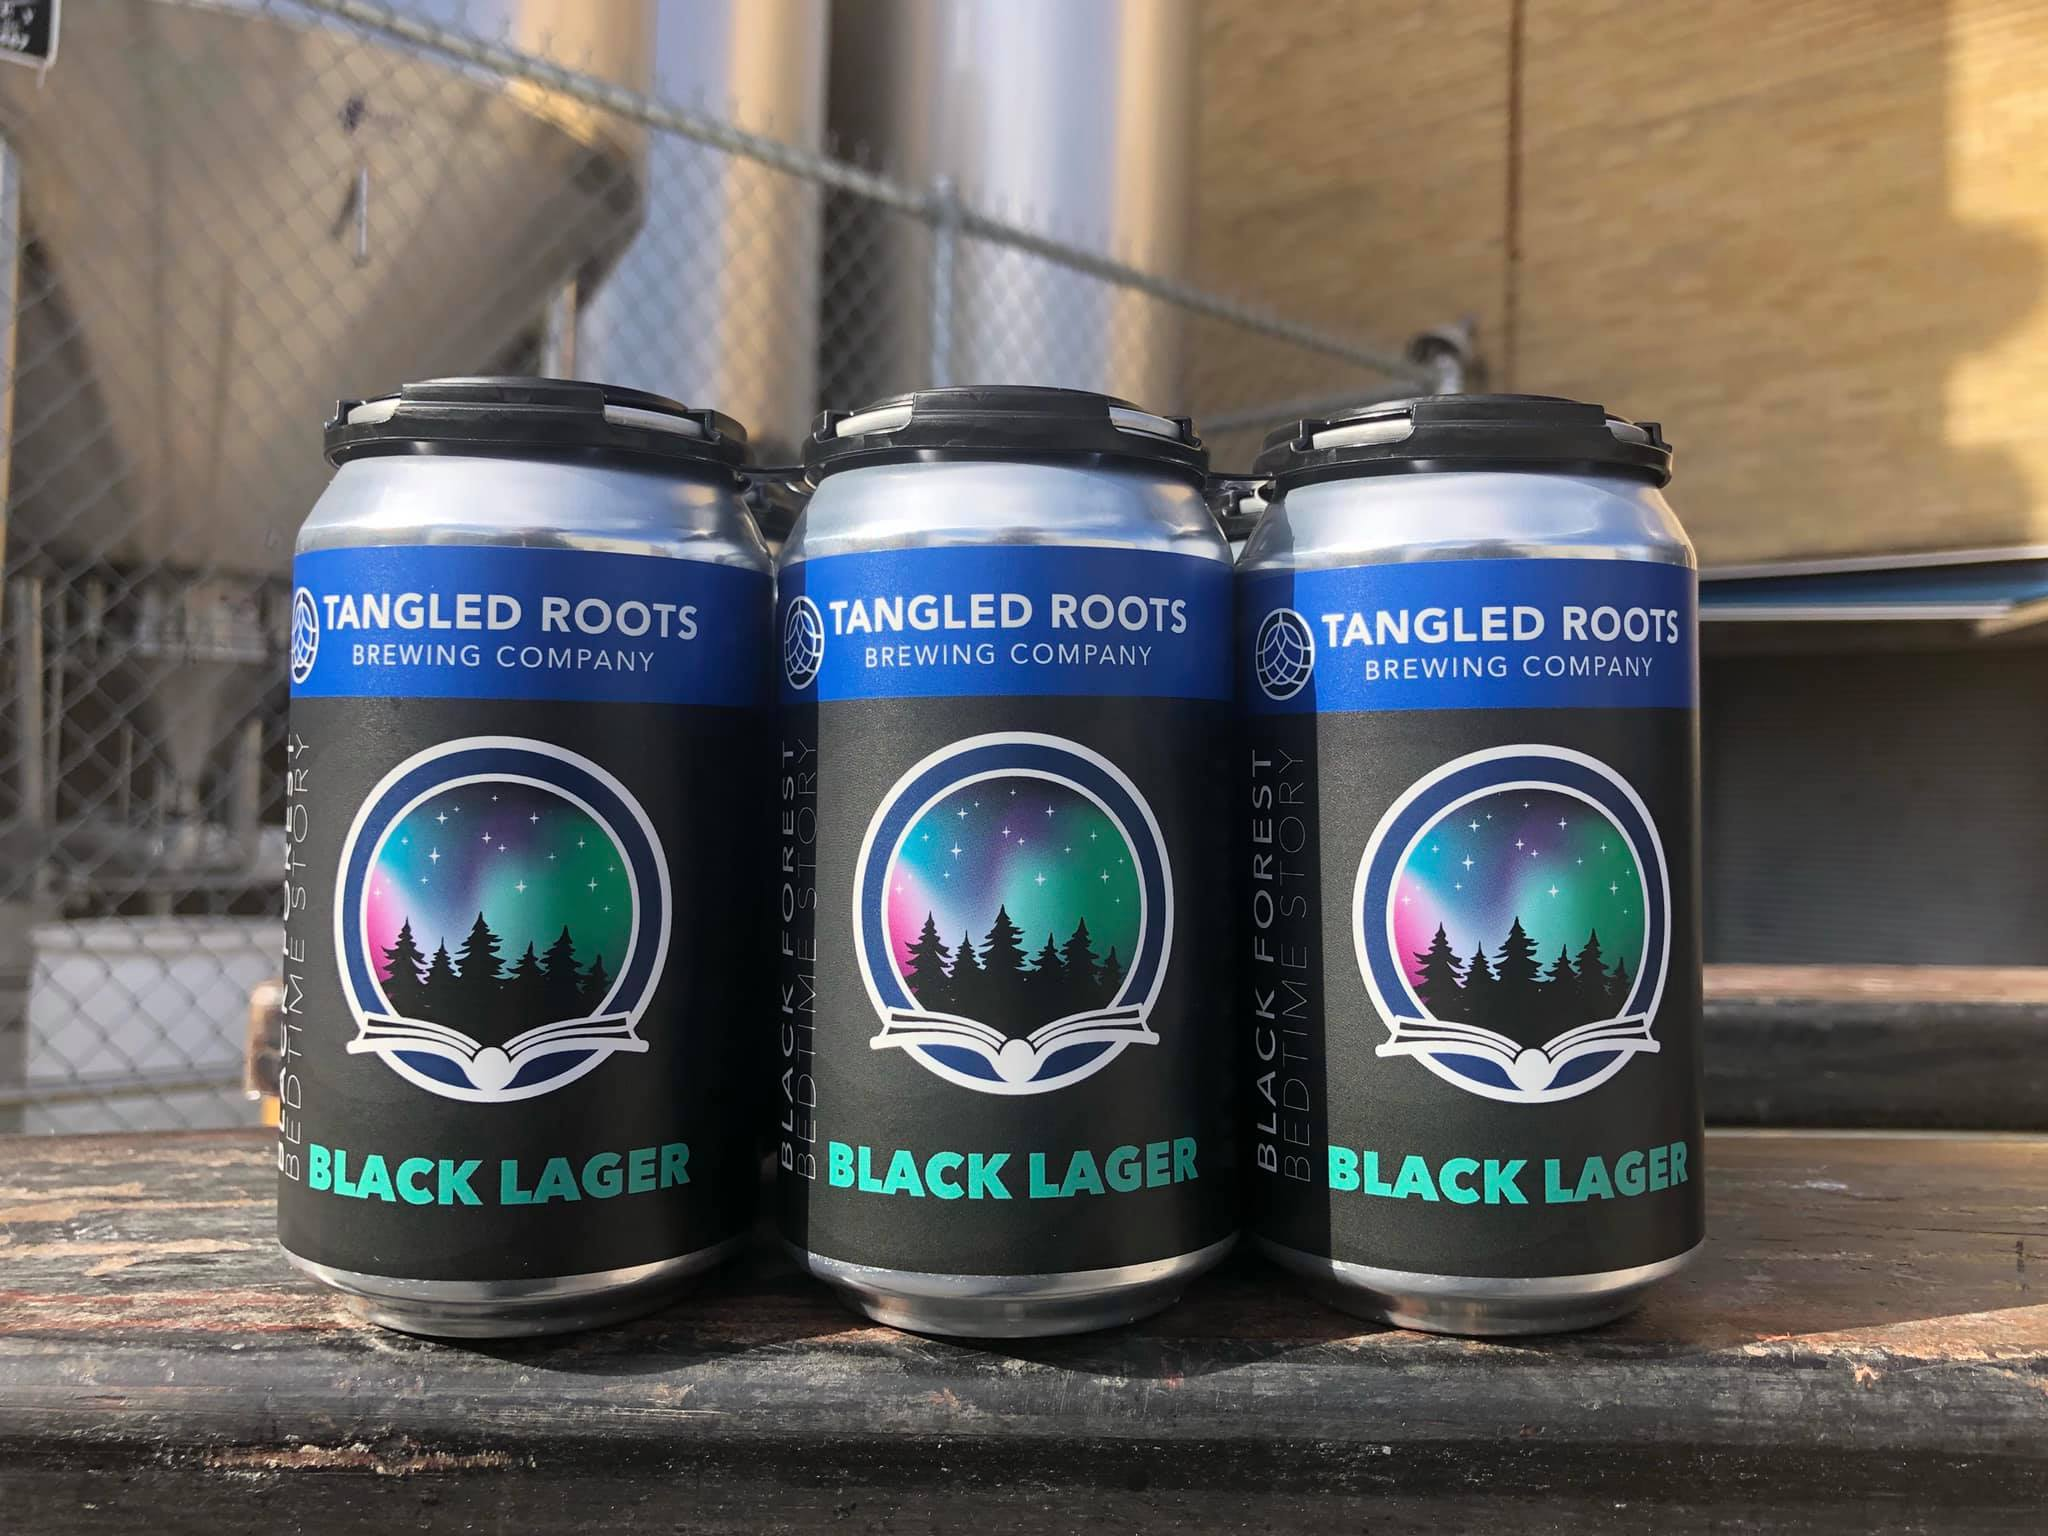 Cans of Black Forest Bedtime Story Black Lager from Tangled Roots Brewing Company